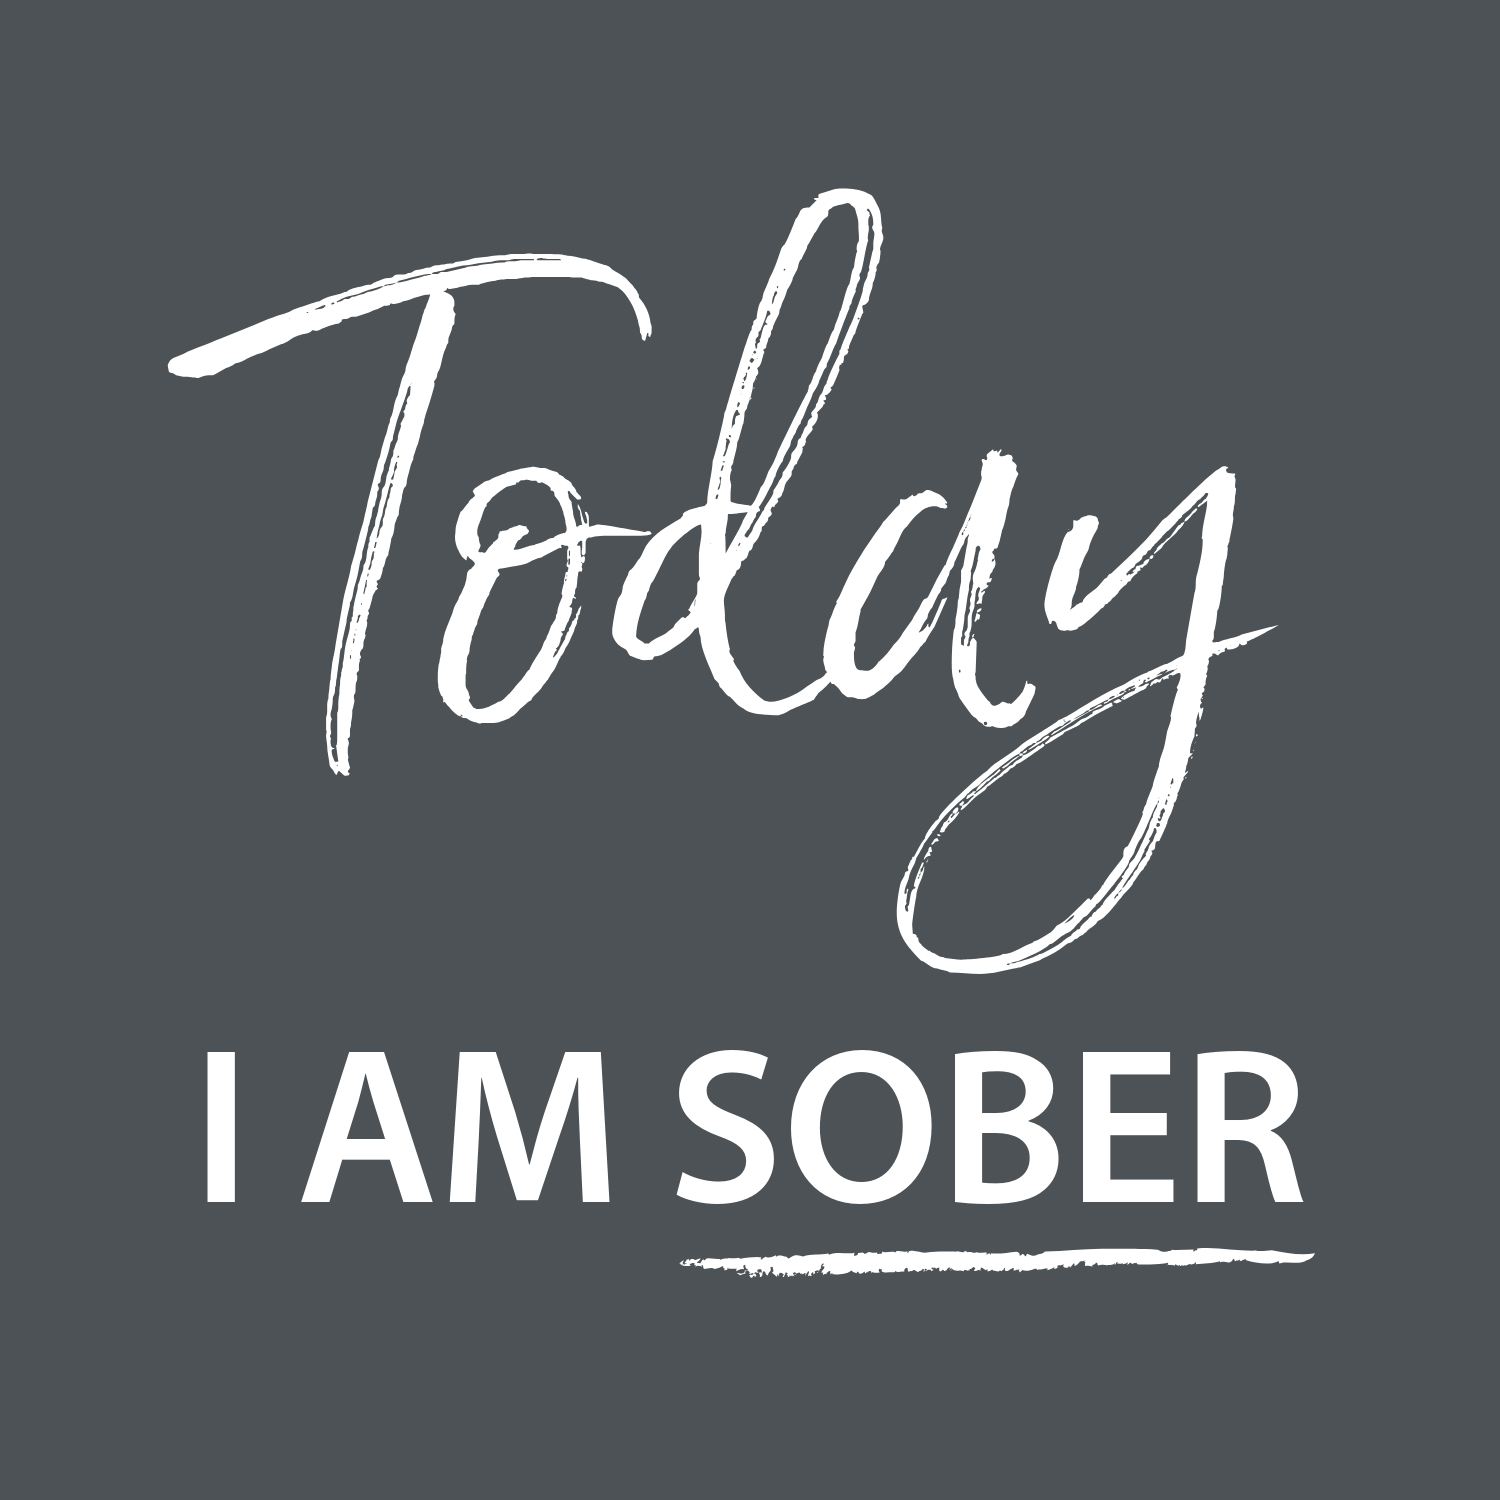 Today I Am Sober